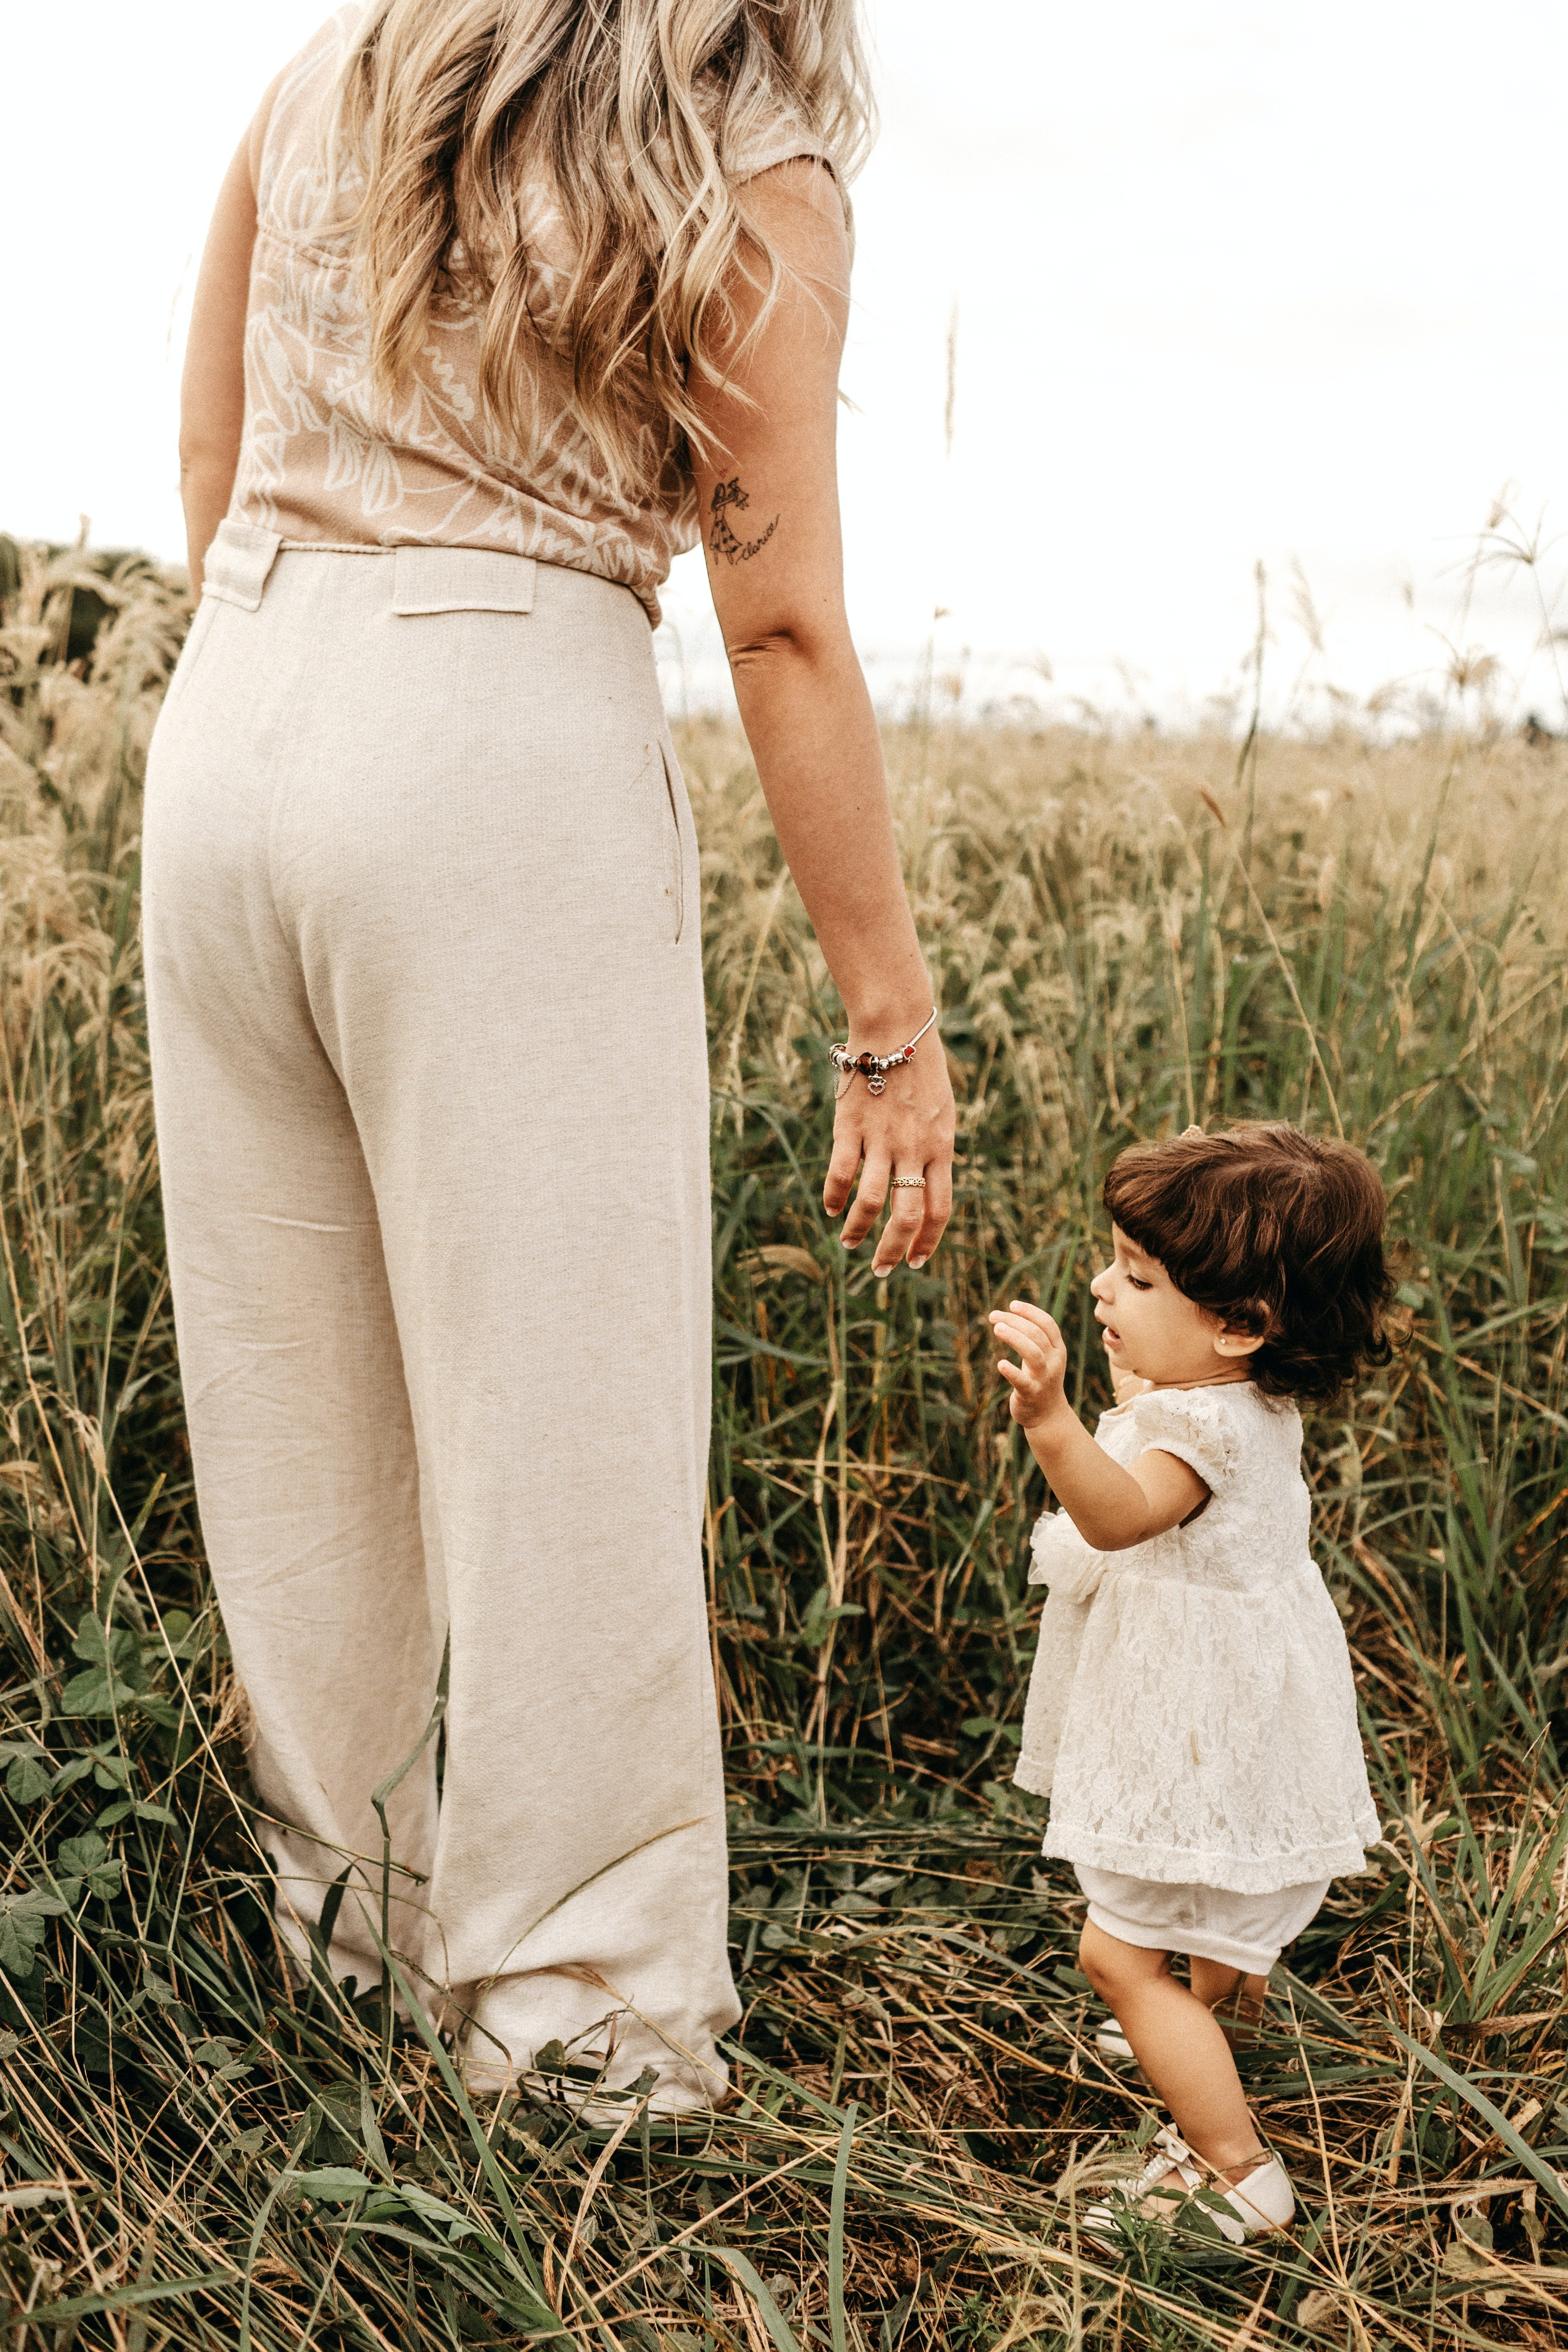 Woman and little girl   Source: Unsplash